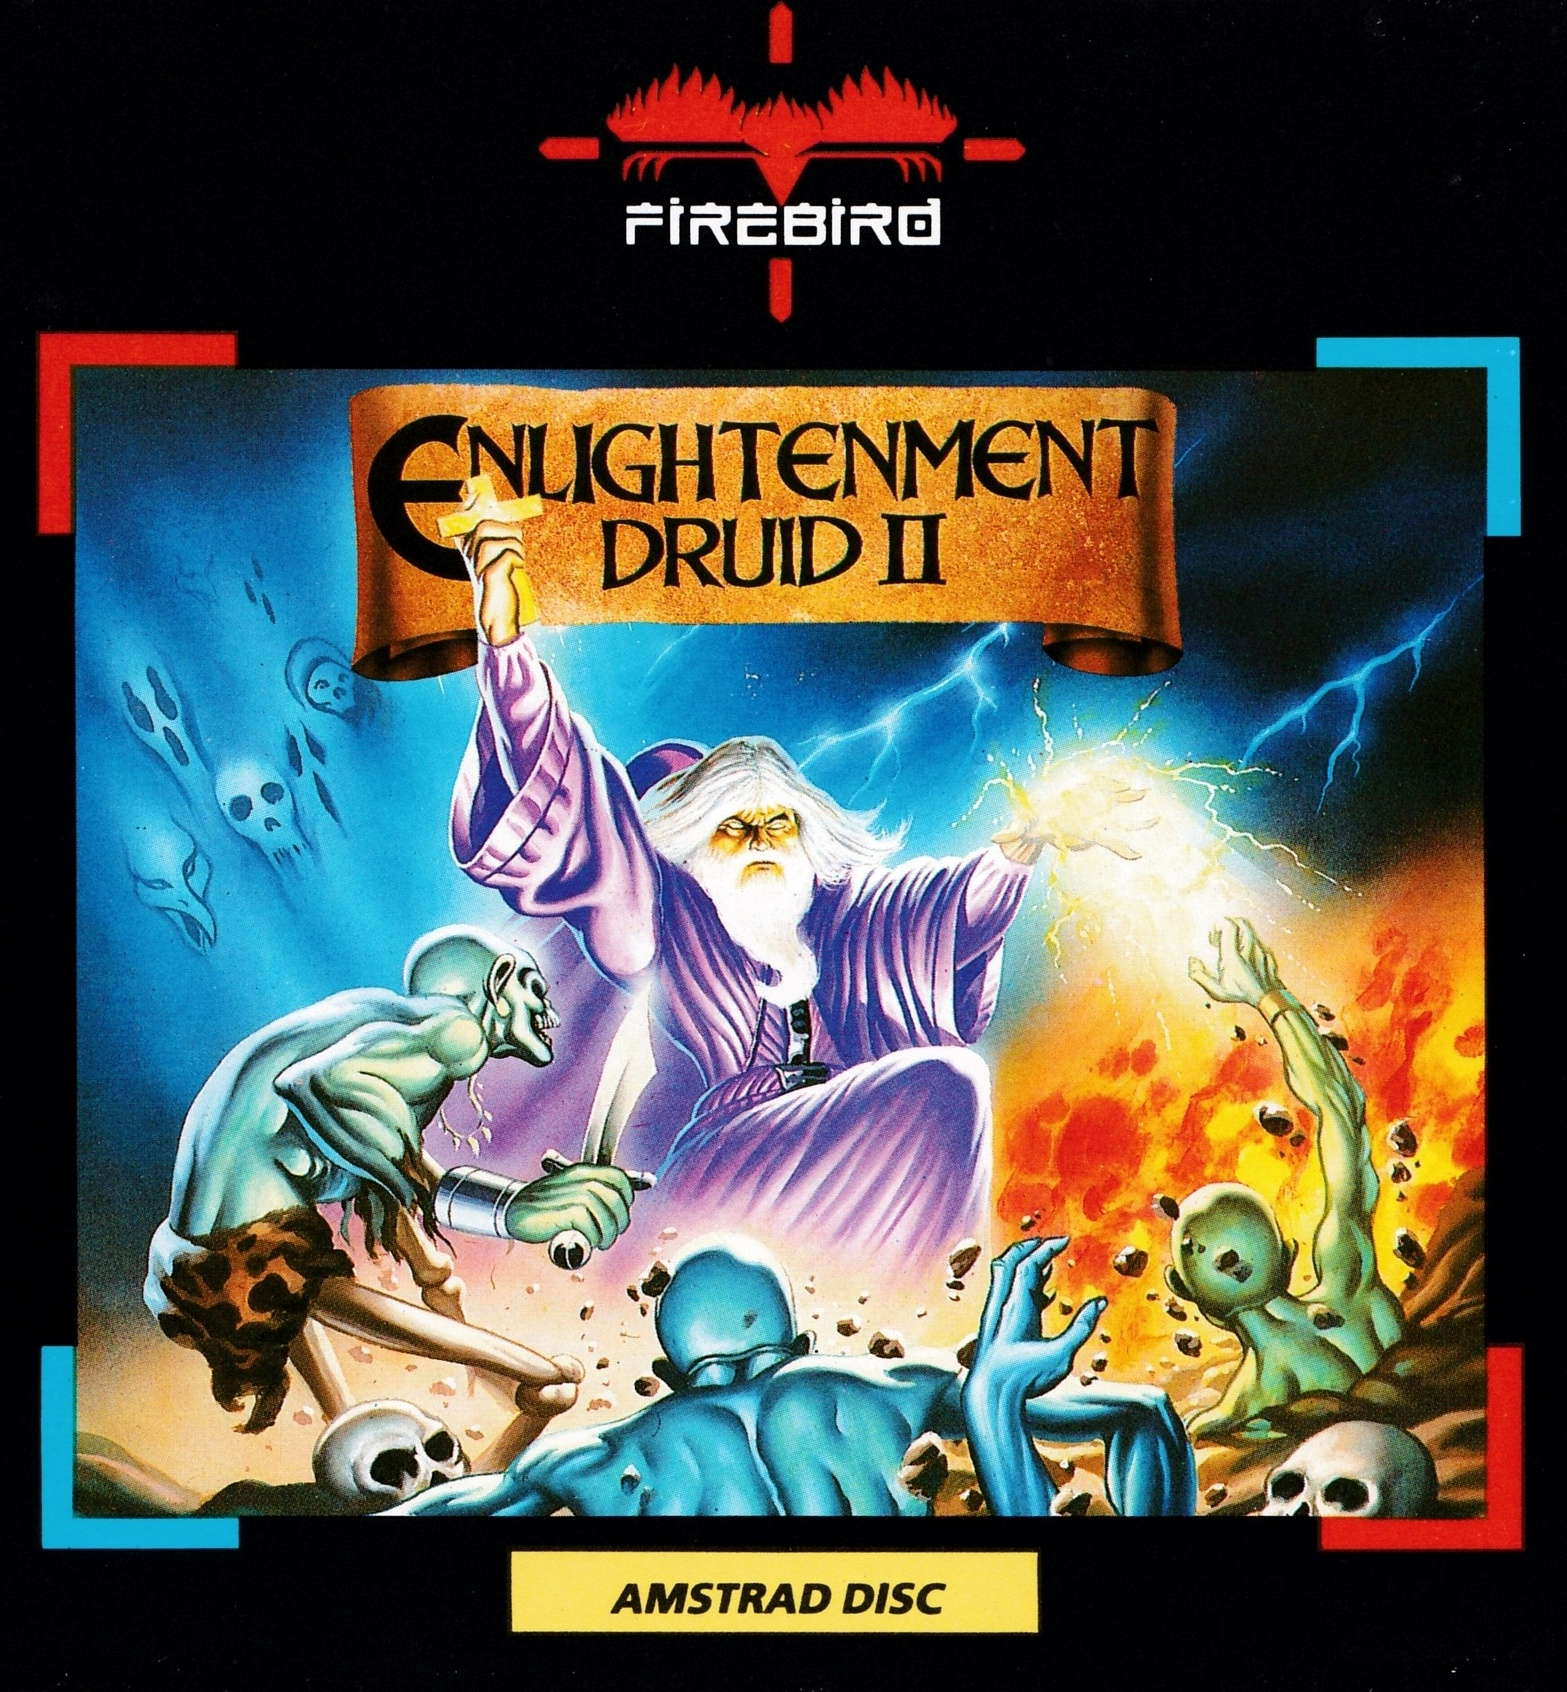 cover of the Amstrad CPC game Enlightenment - Druid II  by GameBase CPC